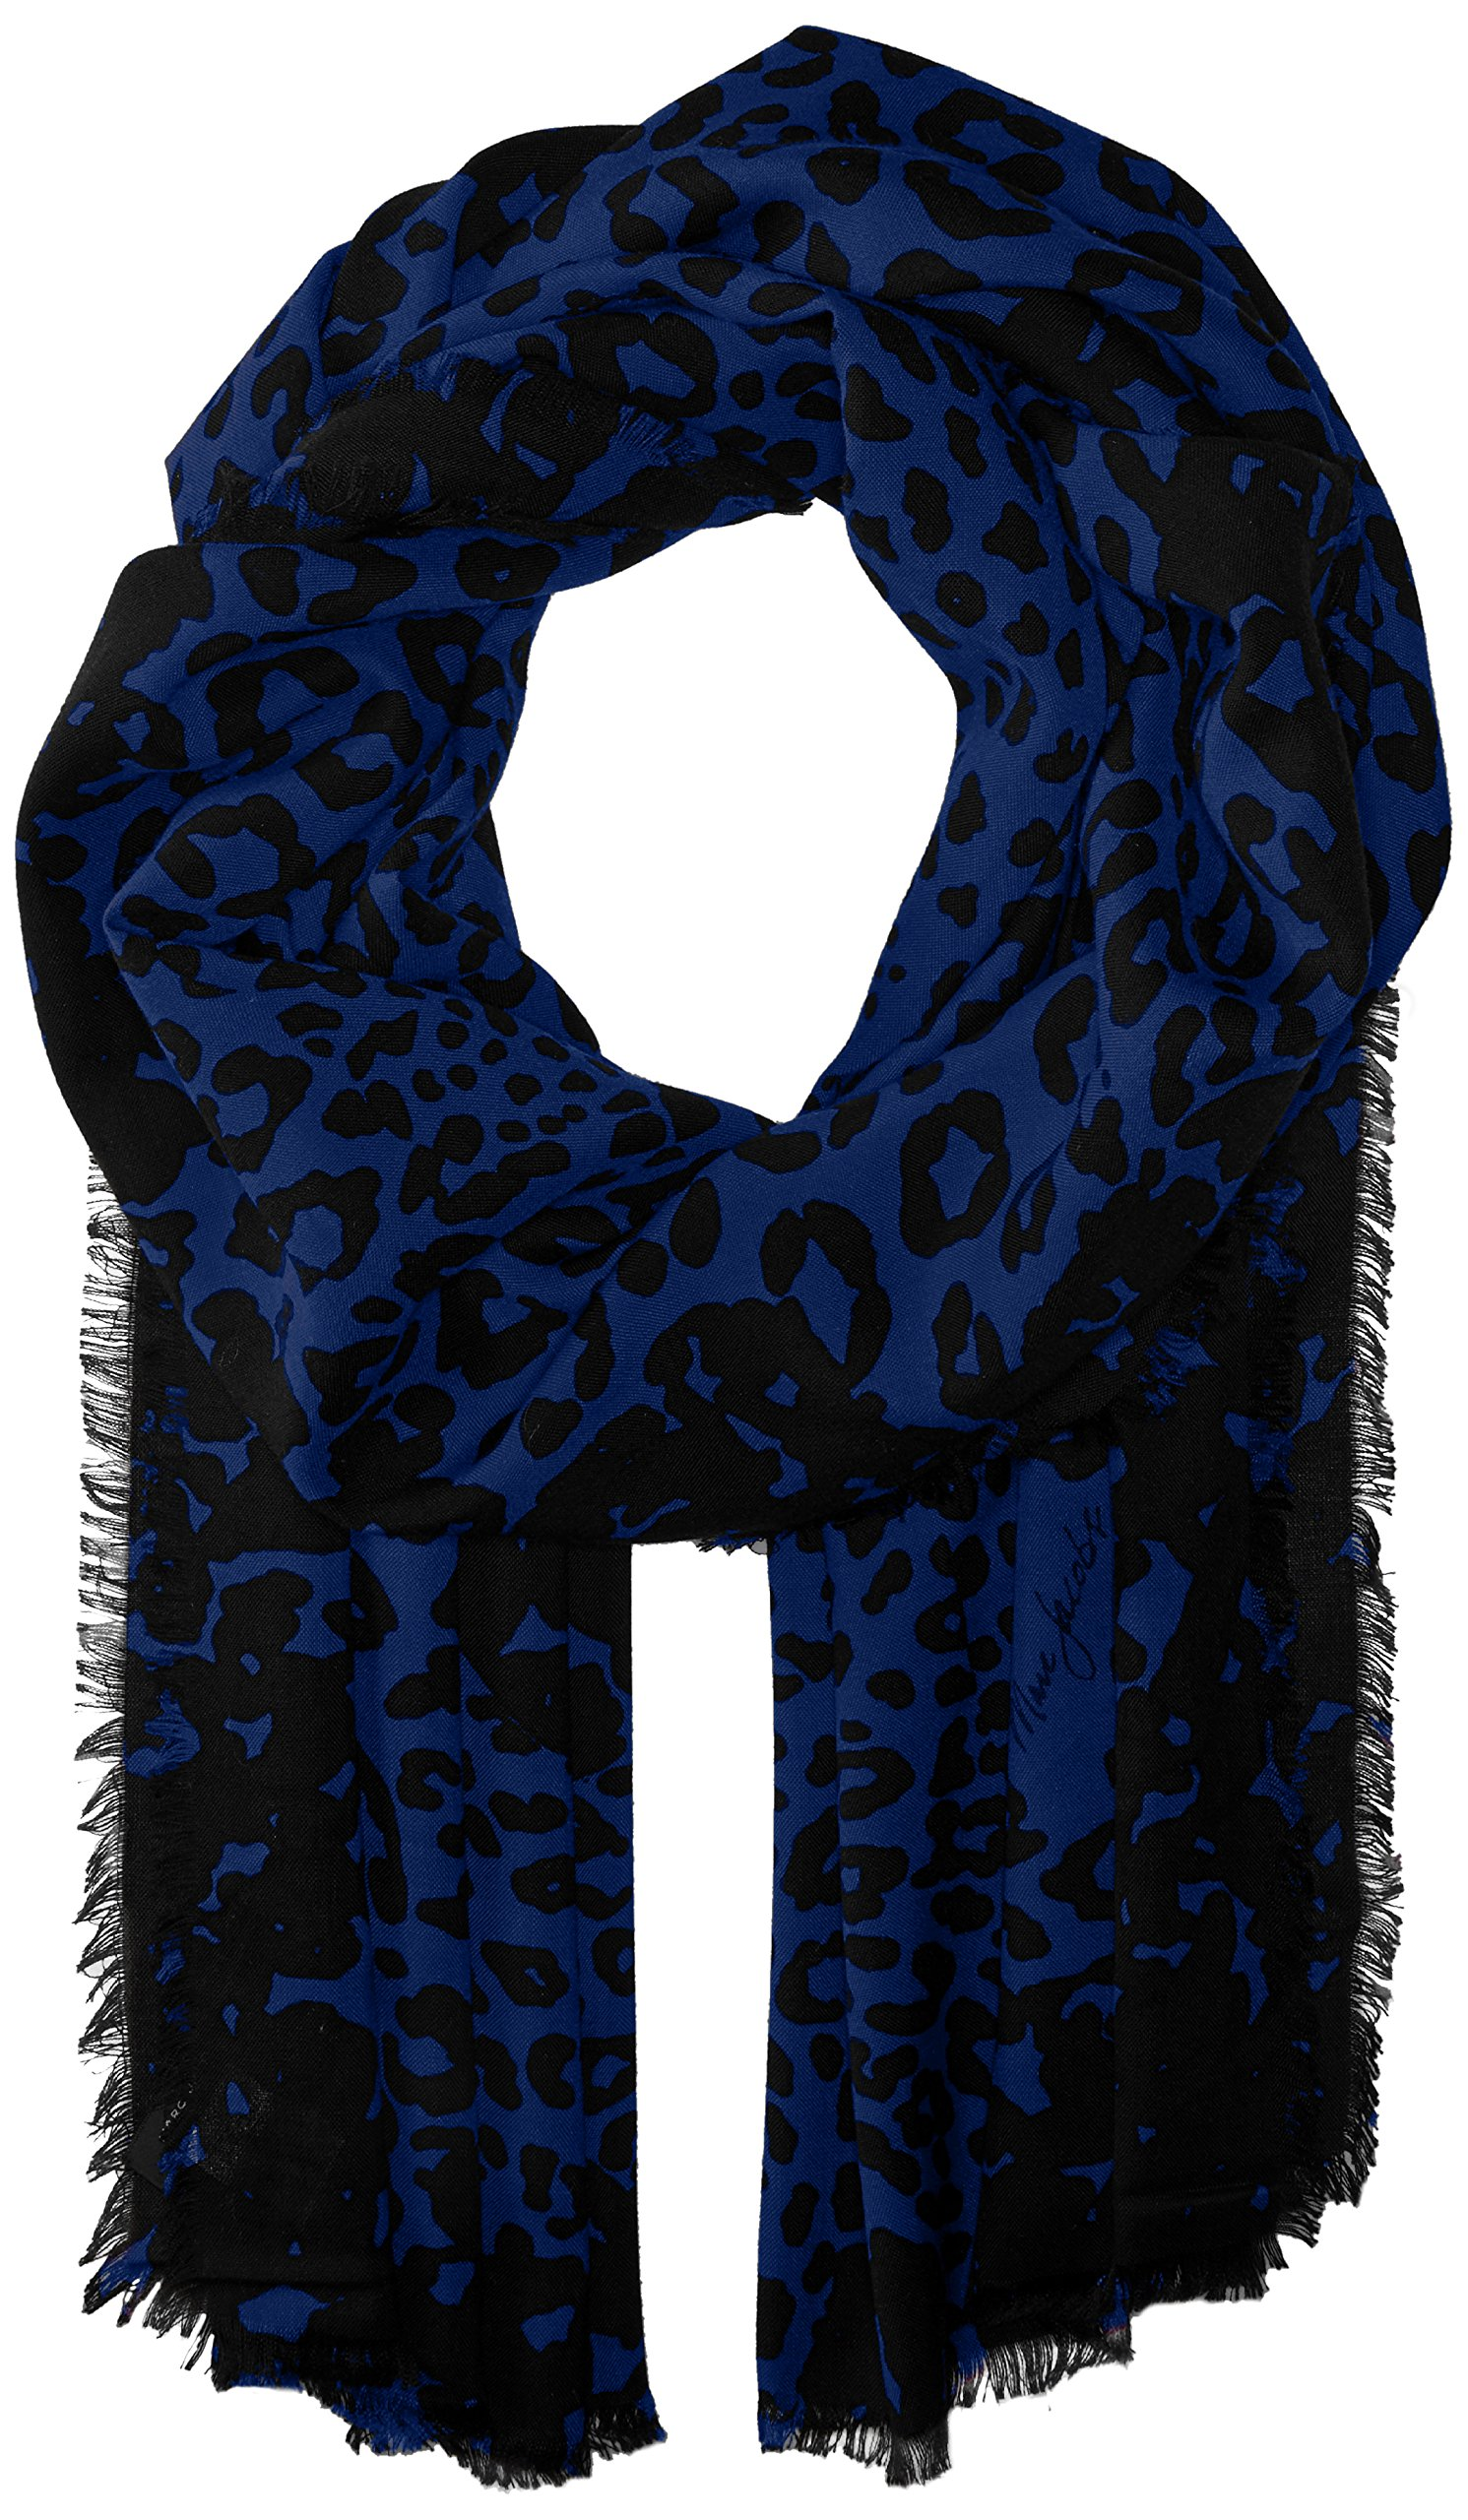 Marc Jacobs Women's Leopard Stole Scarf, black/blue, One Size by Marc Jacobs